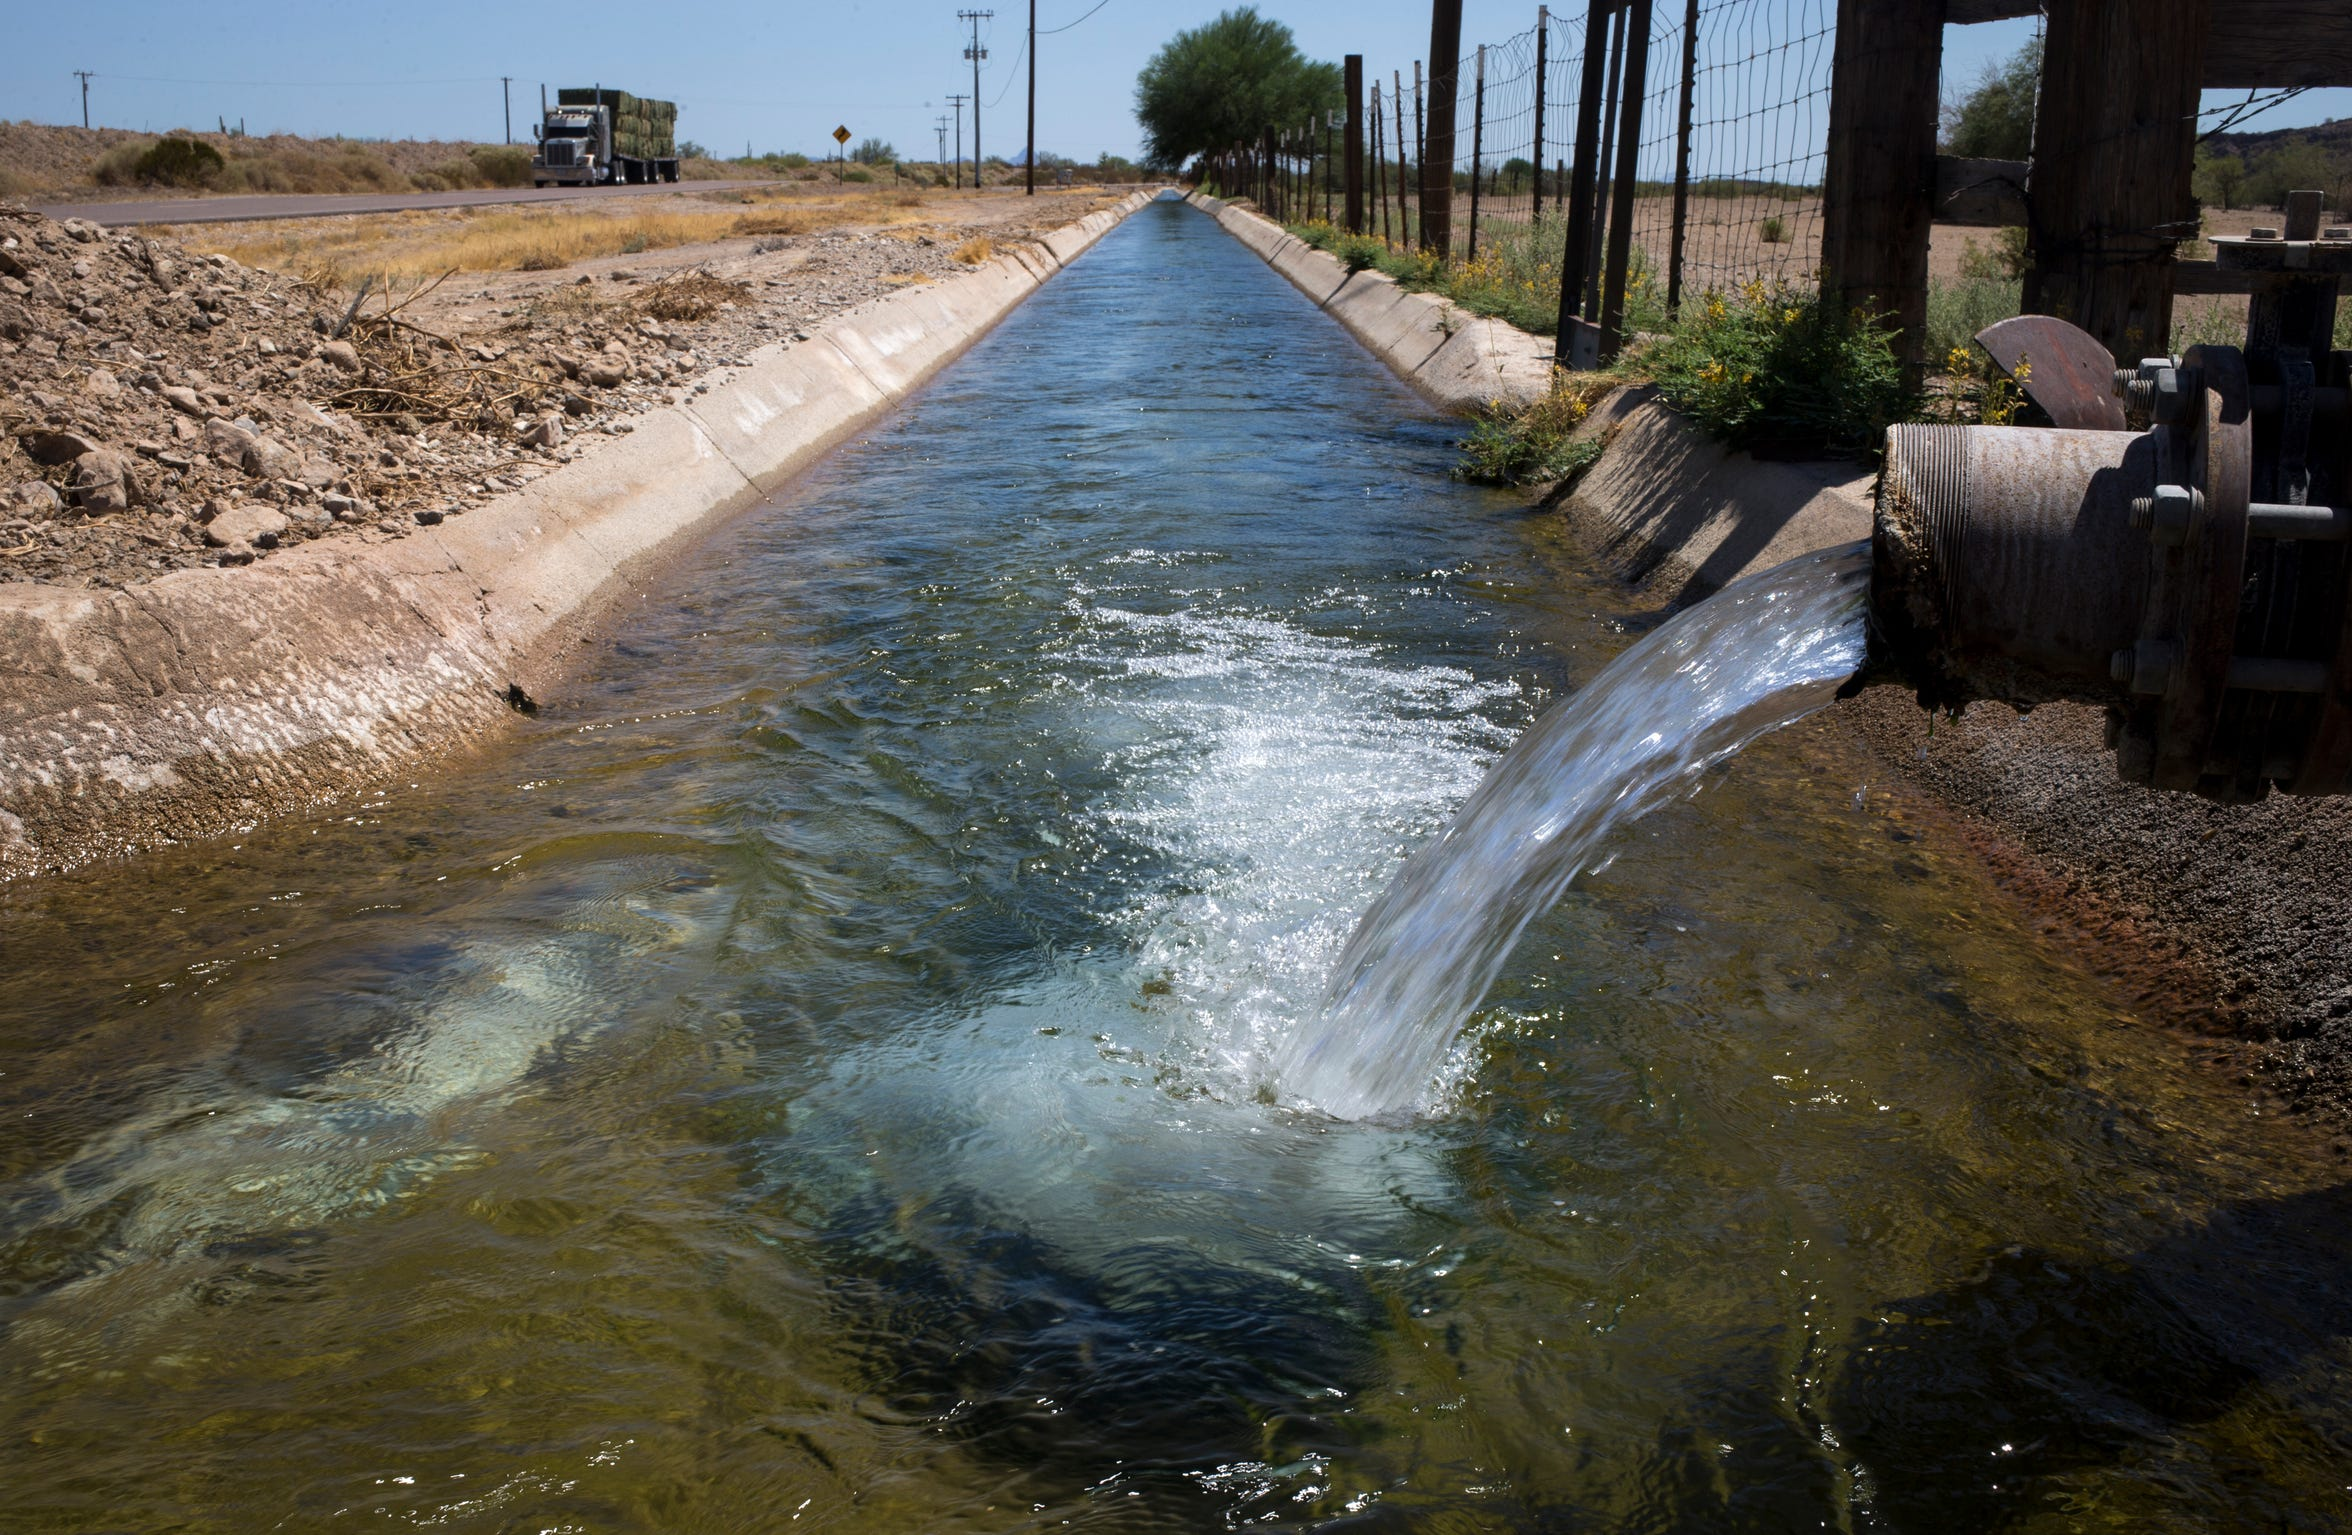 Groundwater pumped from a wells flows into an irrigation canal south of Salome, Arizona.